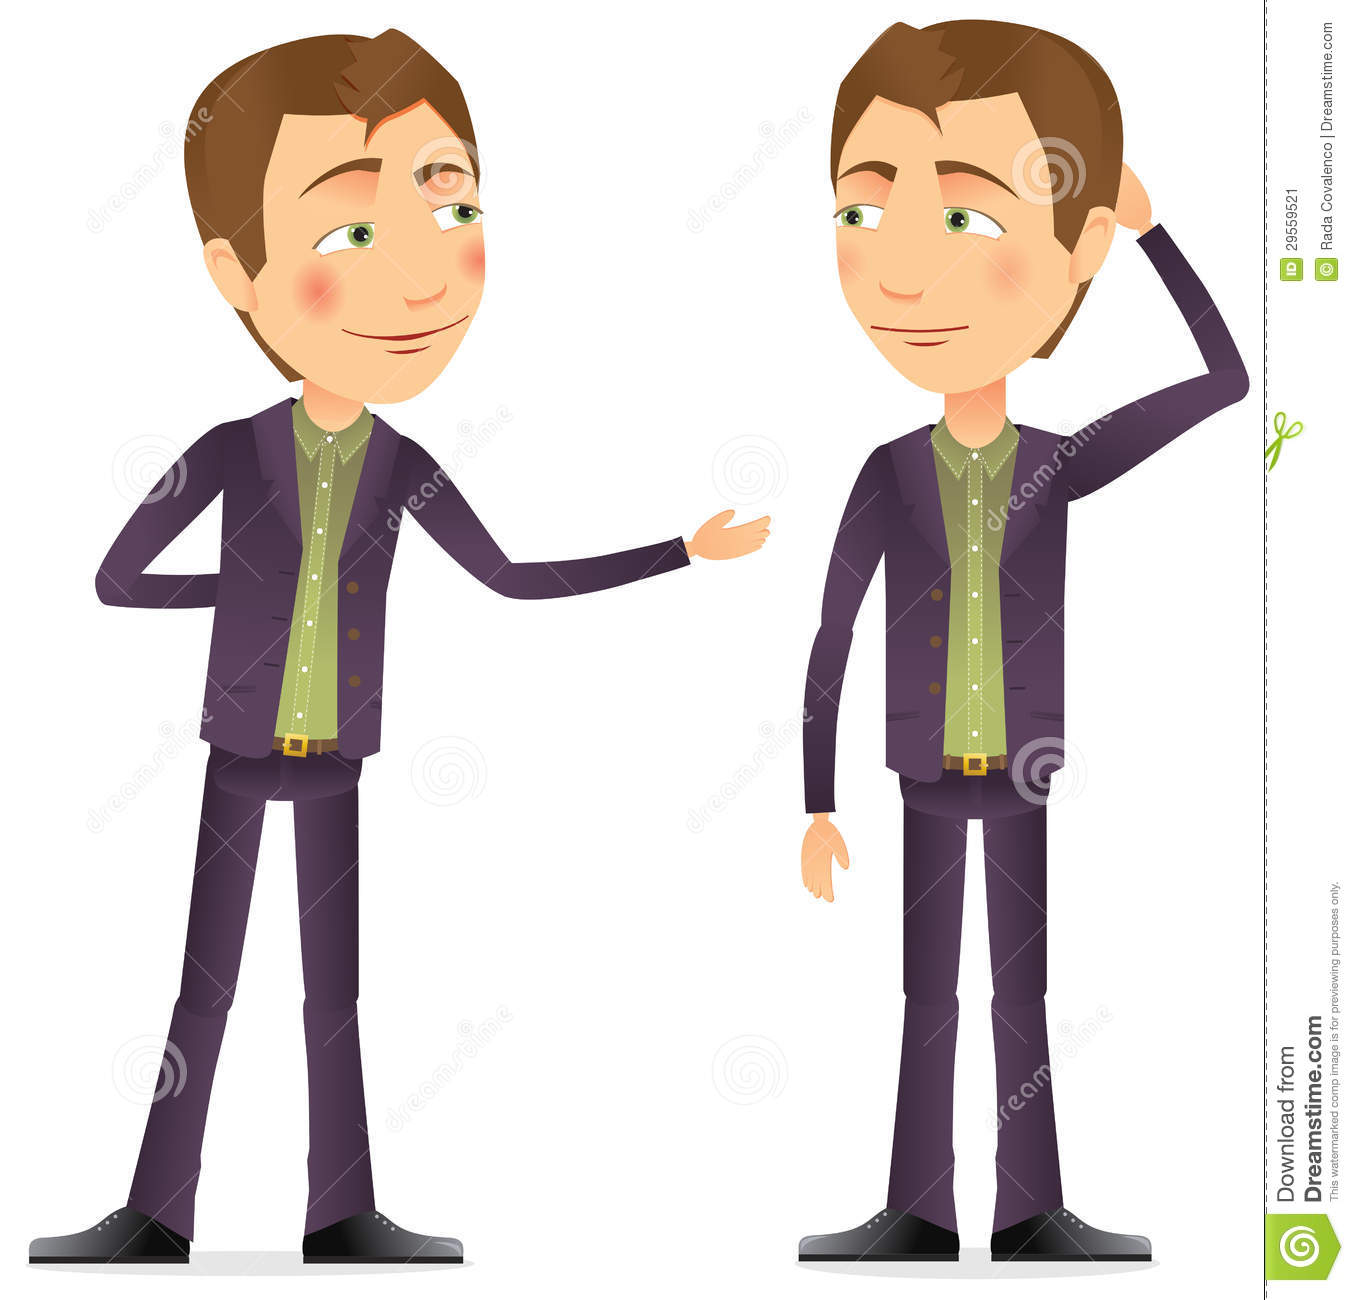 A Conversation Between Two Men Stock Image - Image: 29559521